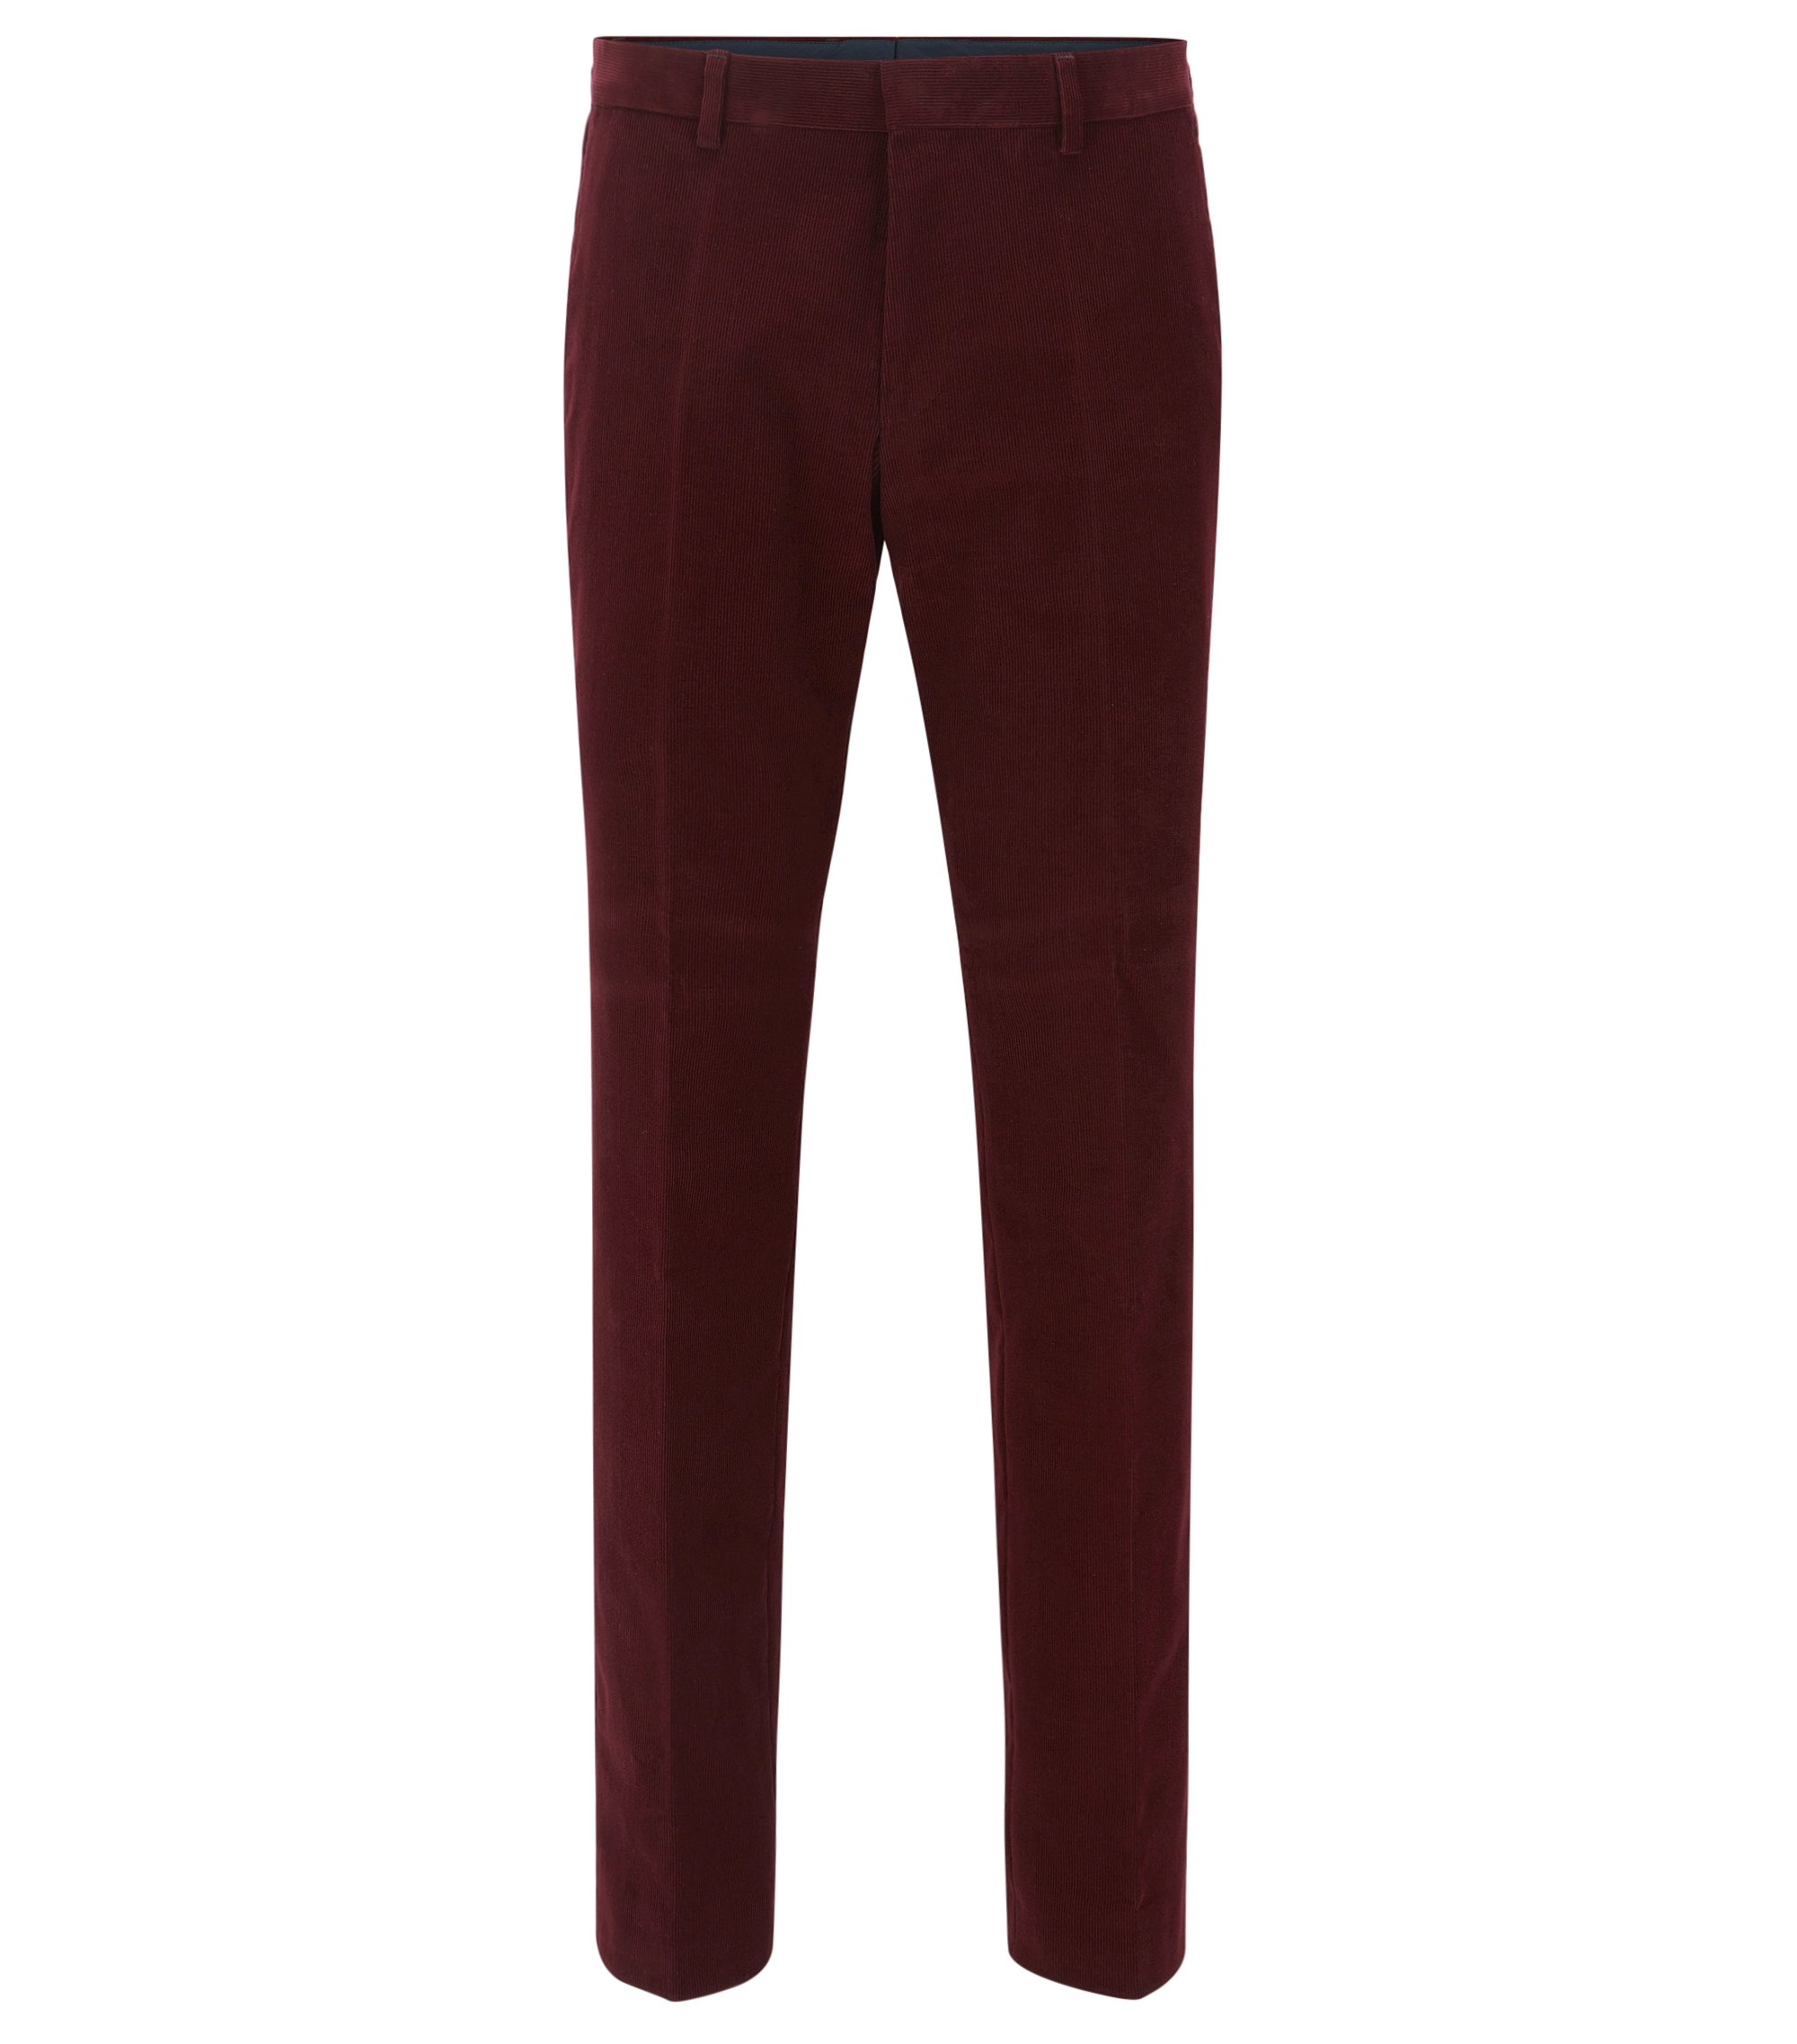 Corduroy Dress Pant, Slim Fit | Genesis, Dark Red